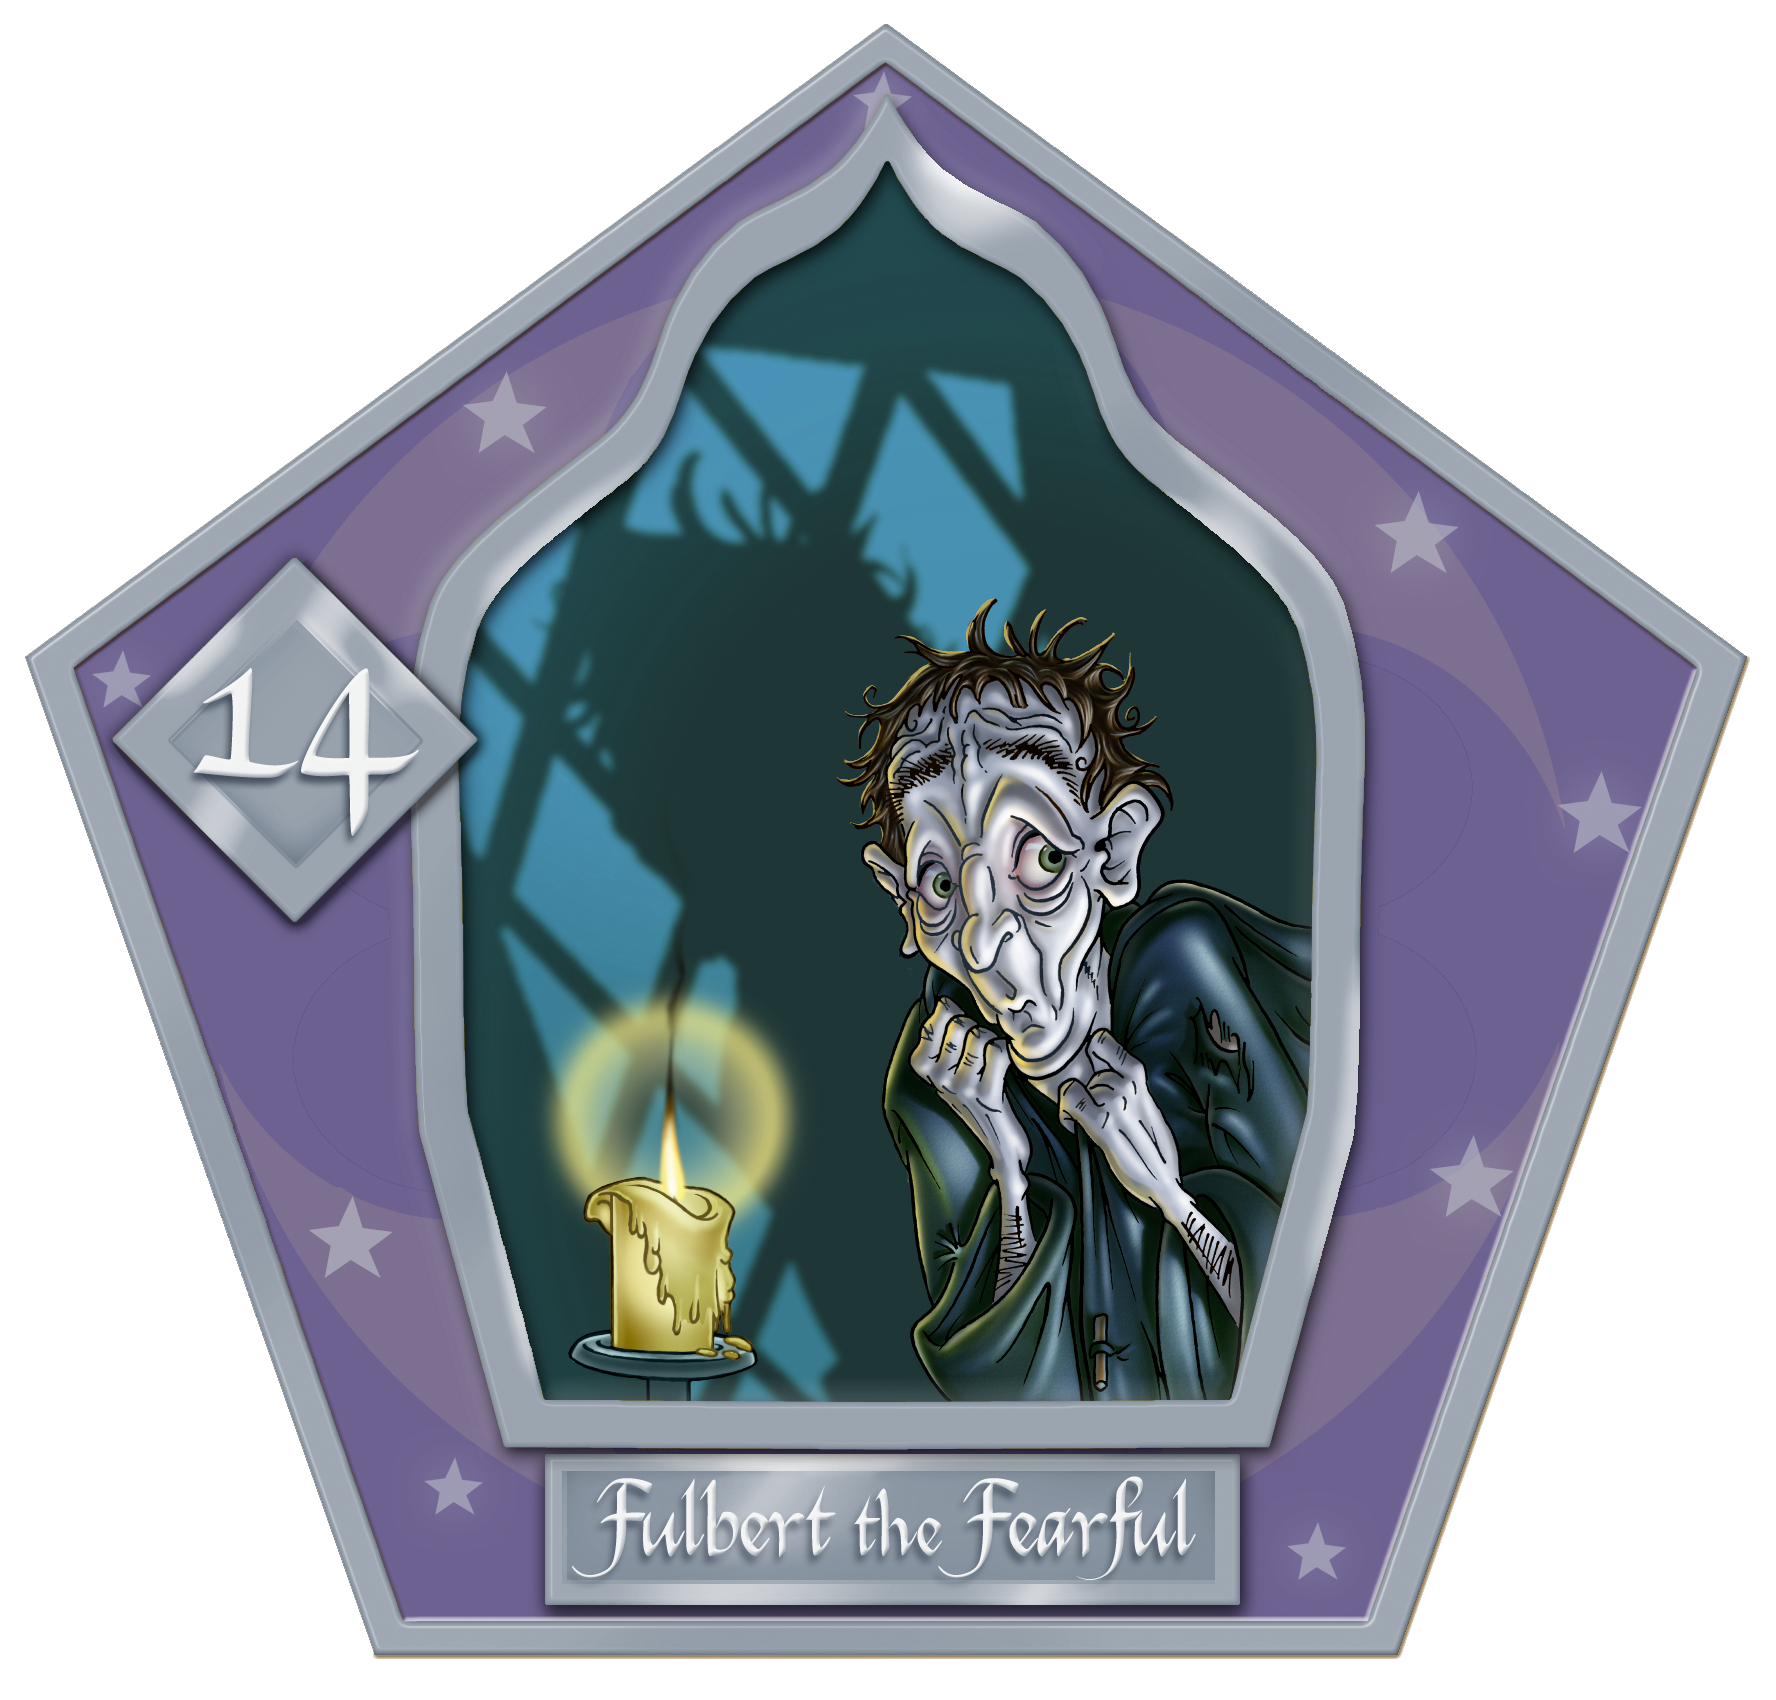 File:Fulbert The Fearful-14-chocFrogCard.png